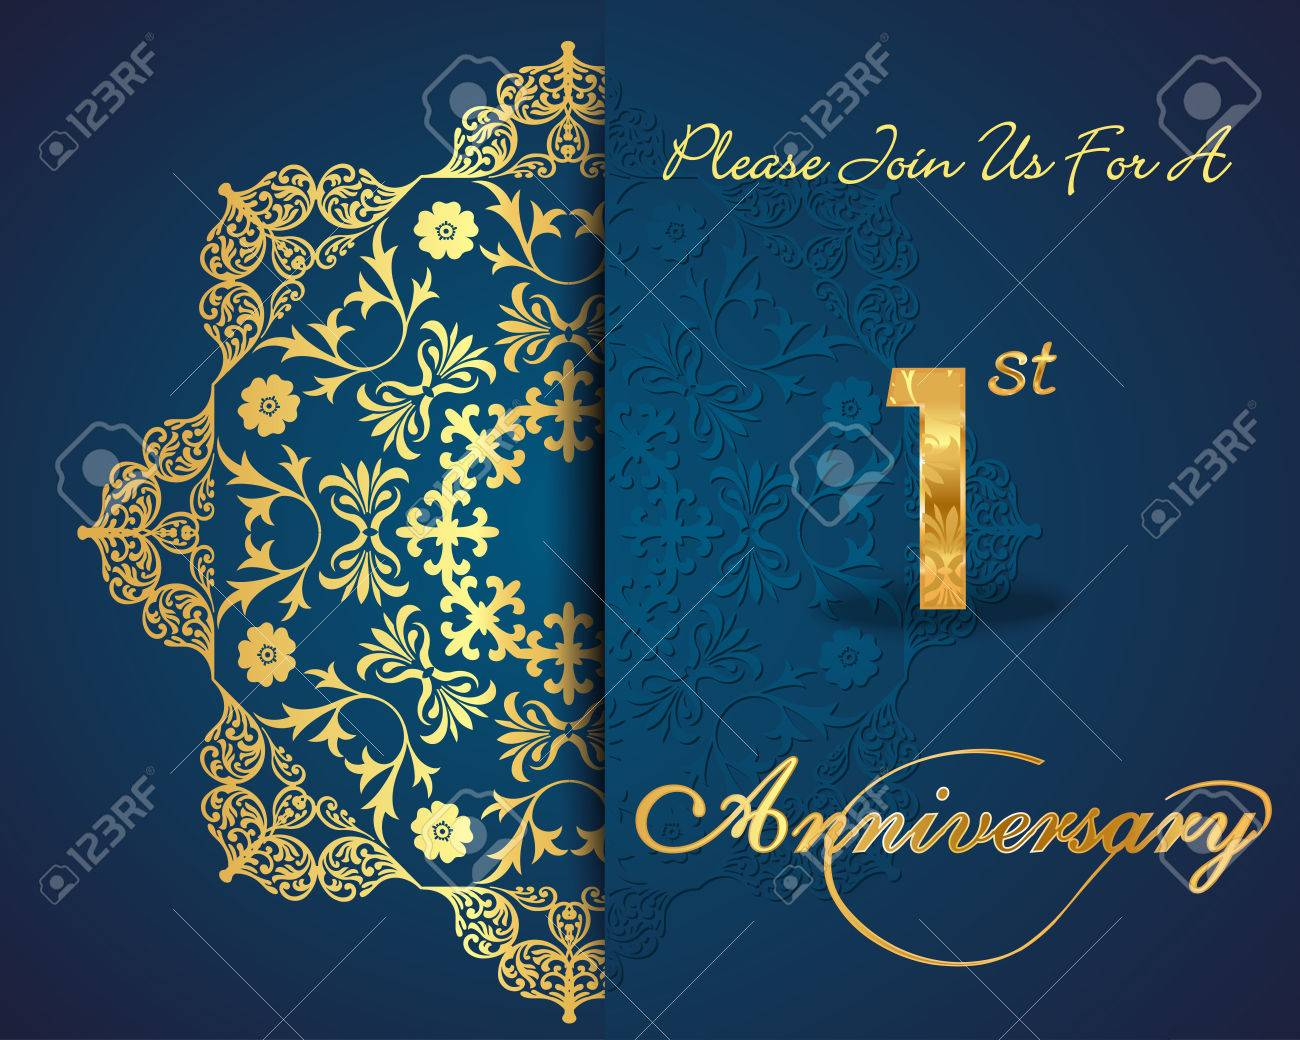 1 year anniversary celebration pattern design 1st anniversary 1 year anniversary celebration pattern design 1st anniversary decorative floral elements ornate background stopboris Image collections